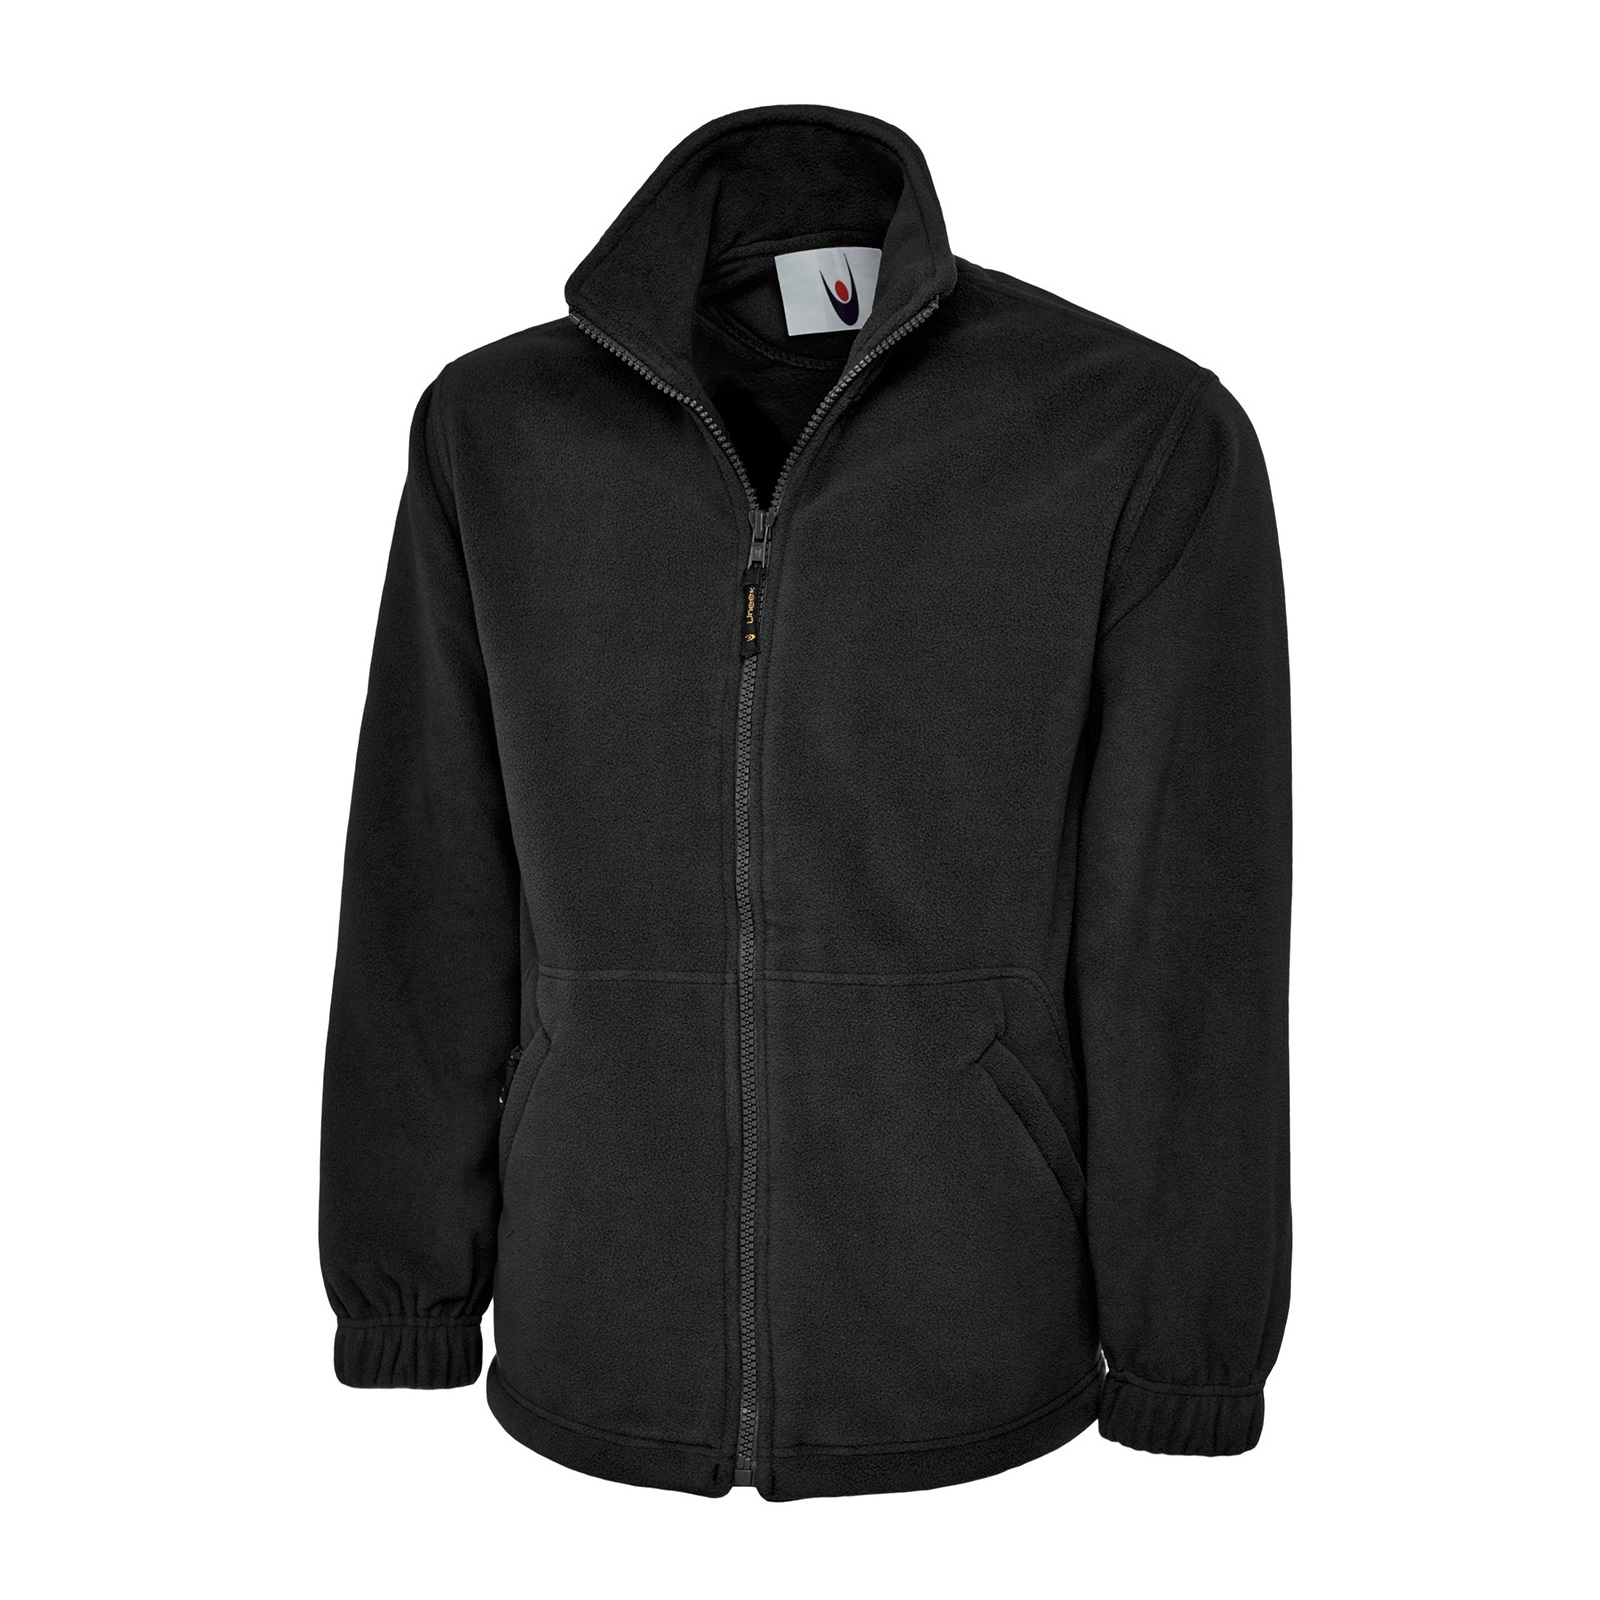 Men's Fleece Outerwear Sort by: Recommended Newest Price - Low to High Price - High to Low Rating - High to Low Rating - Low to High Product Name A-Z Product Name Z-A.